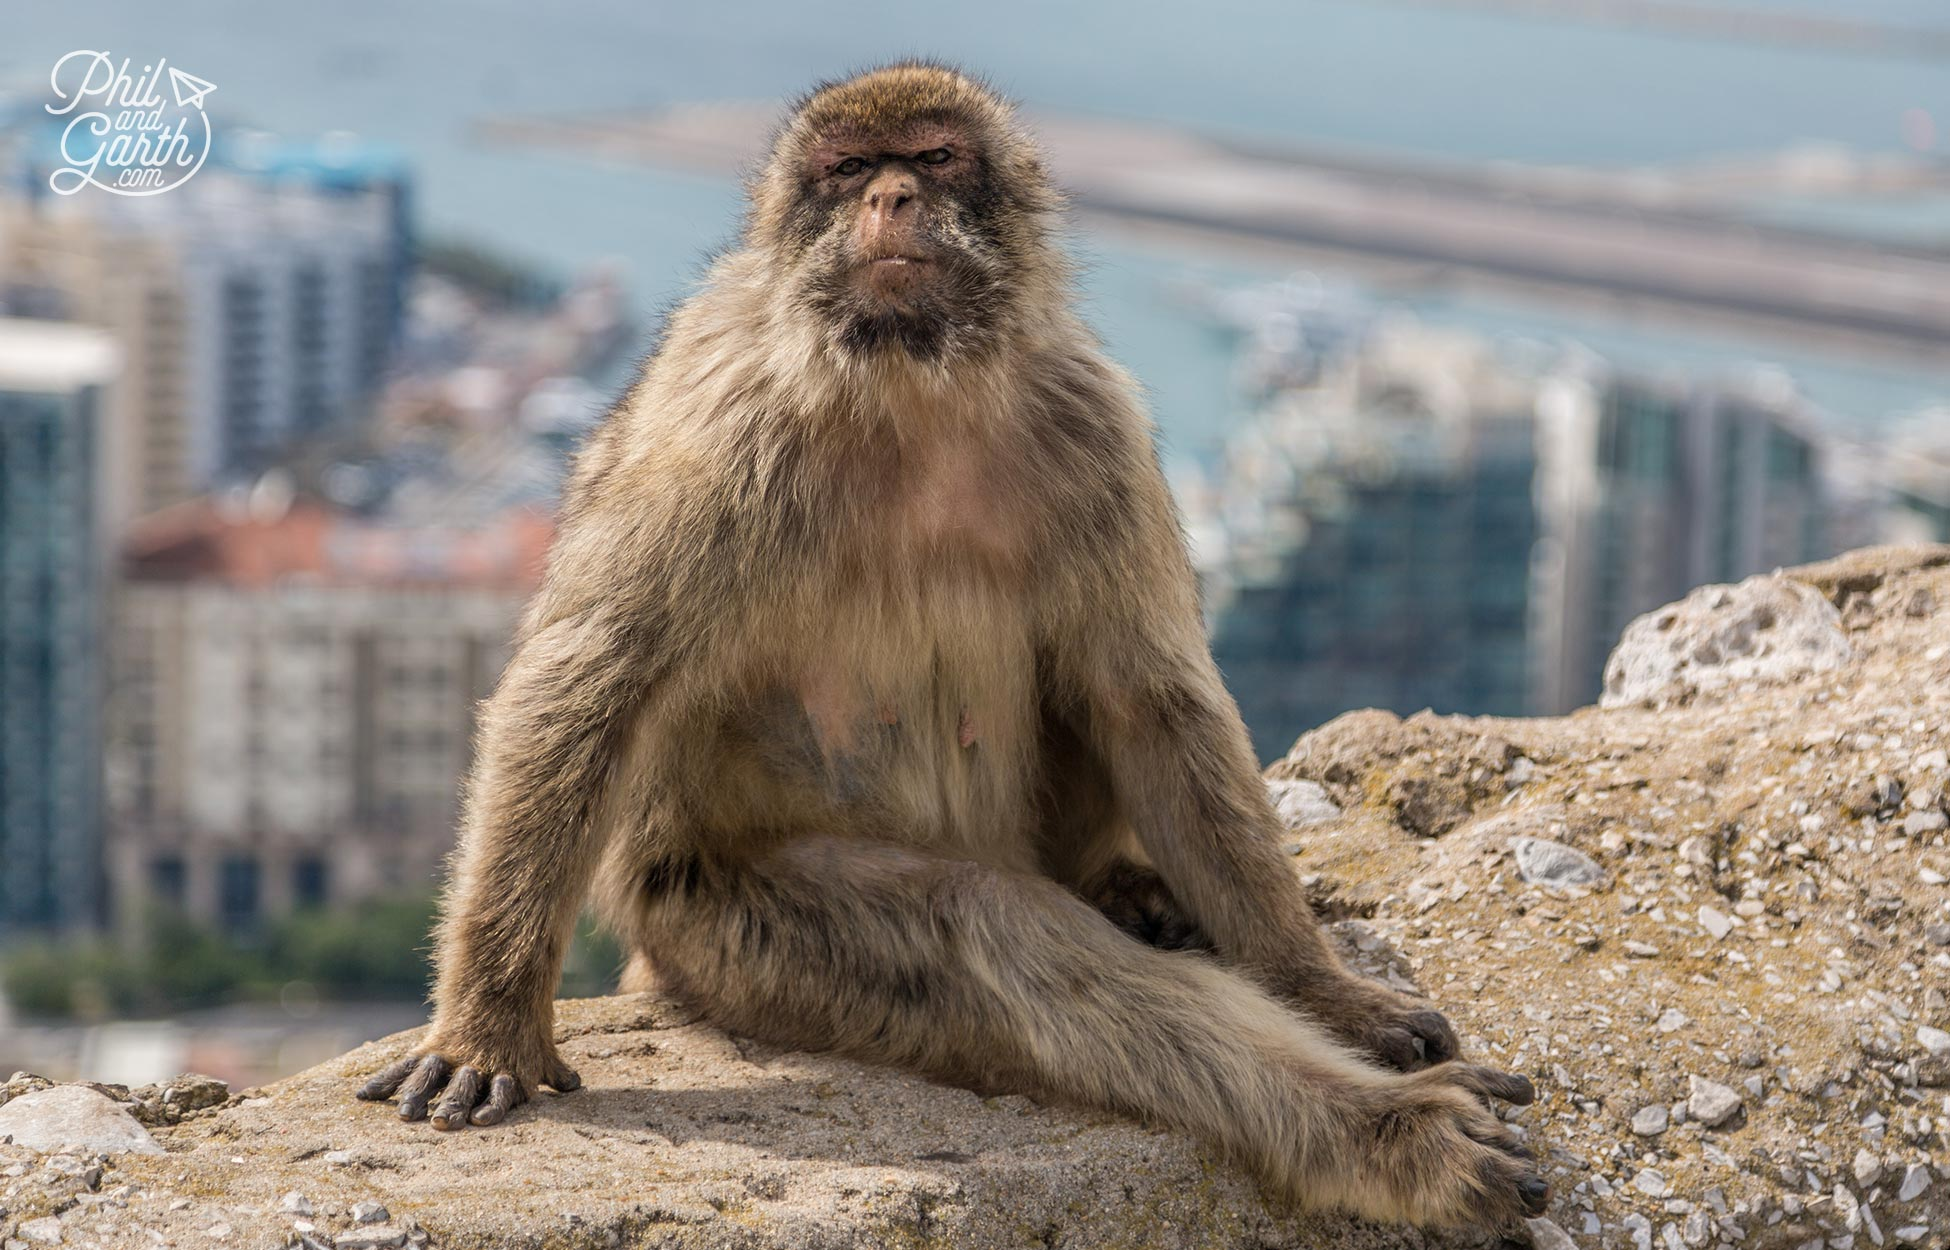 Gibraltar's famous residents – Barbary macaques